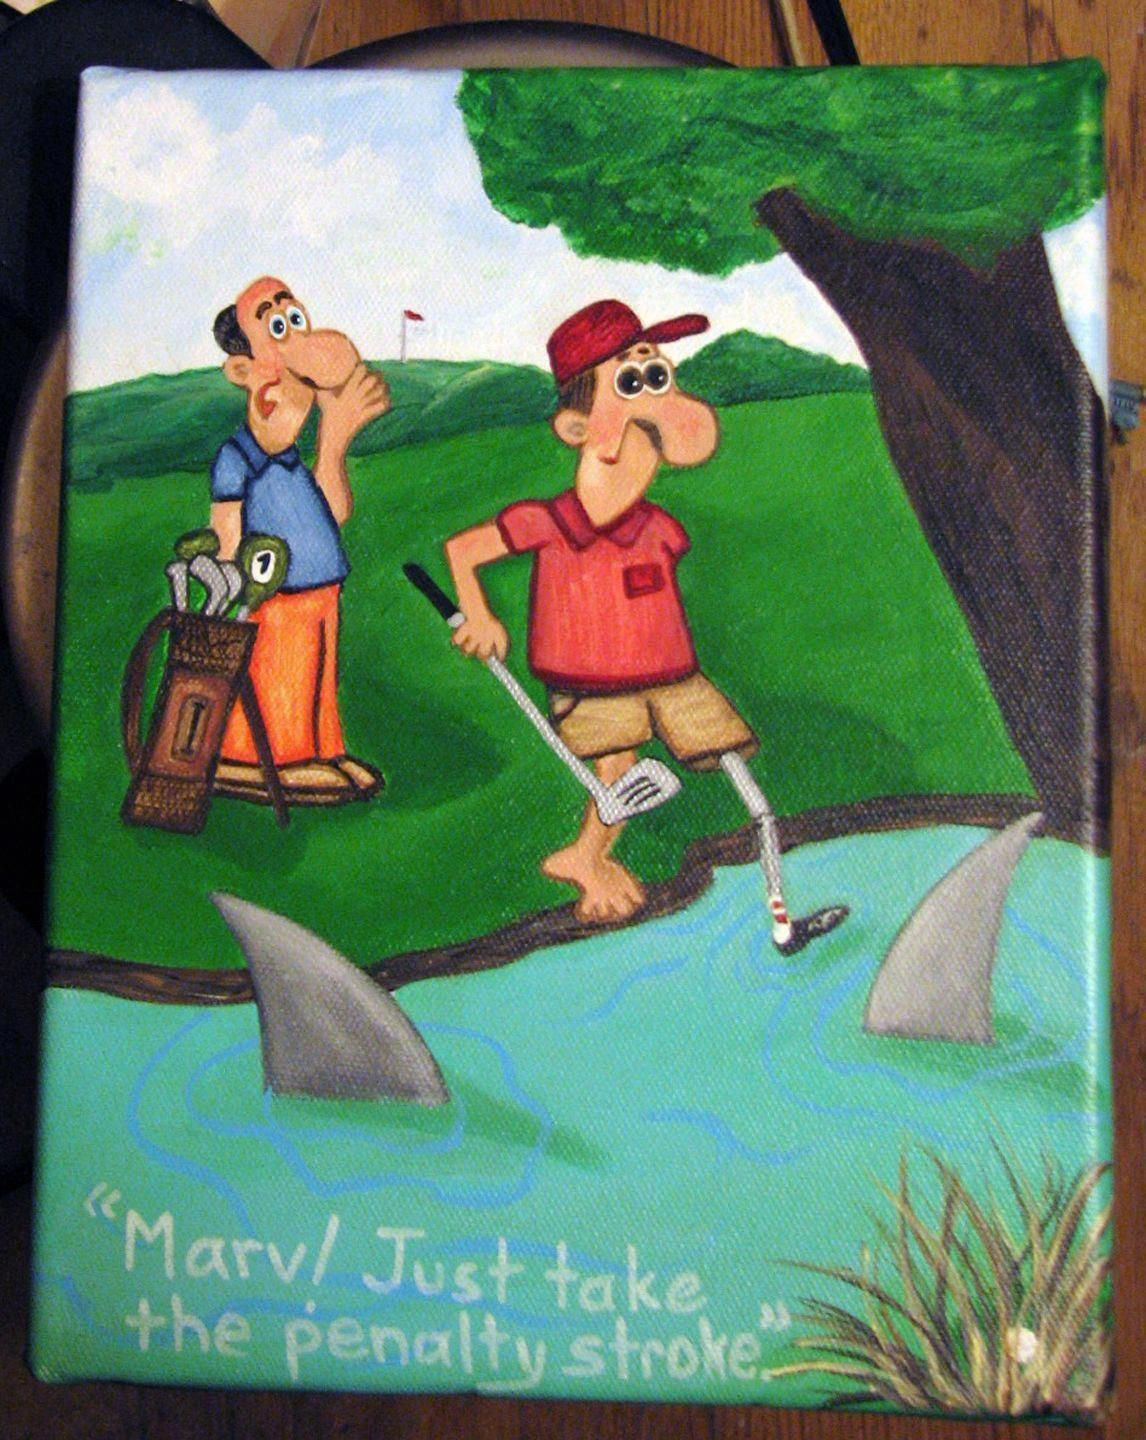 Explore our internet site for even more info on Golf Humor. It is a great area to learn more. #ladiesgolf #golfhumor